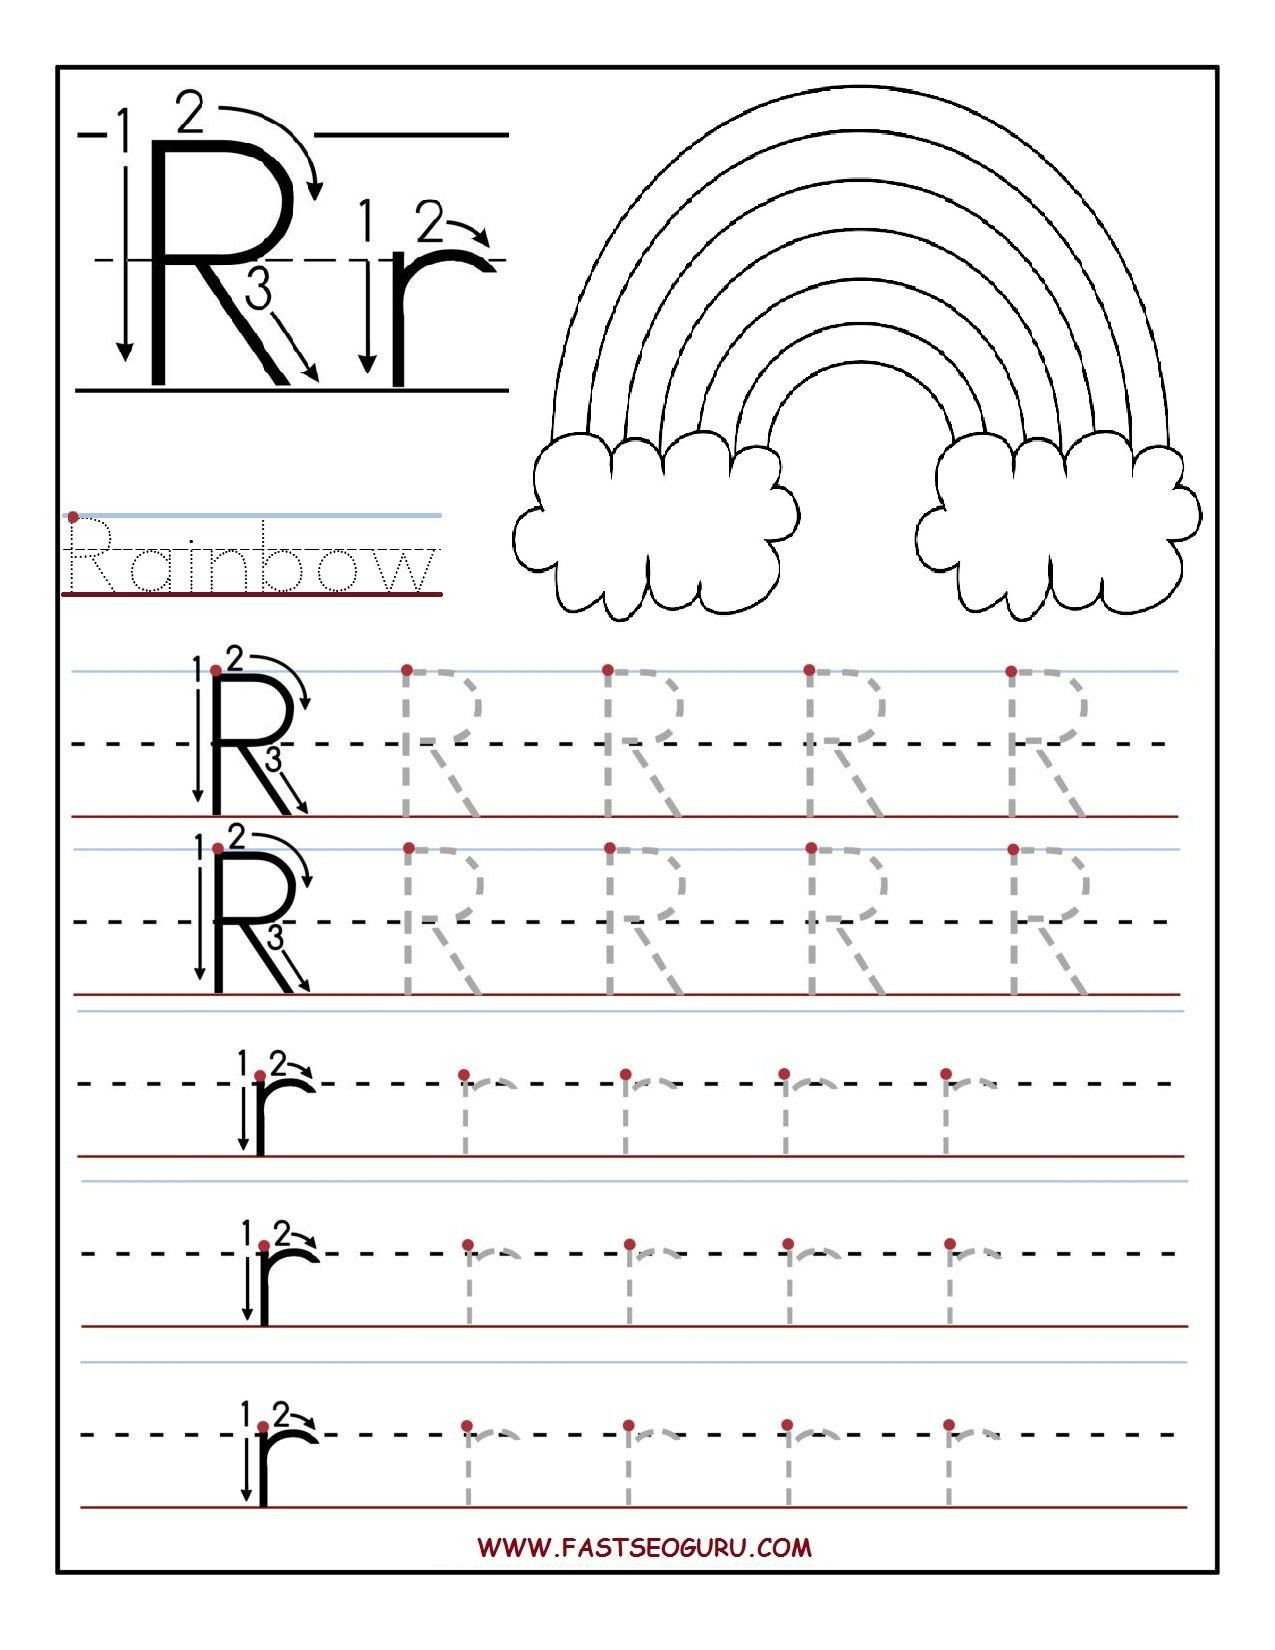 Letter P Worksheets Preschool Printable Letter R Tracing Worksheets for Preschool